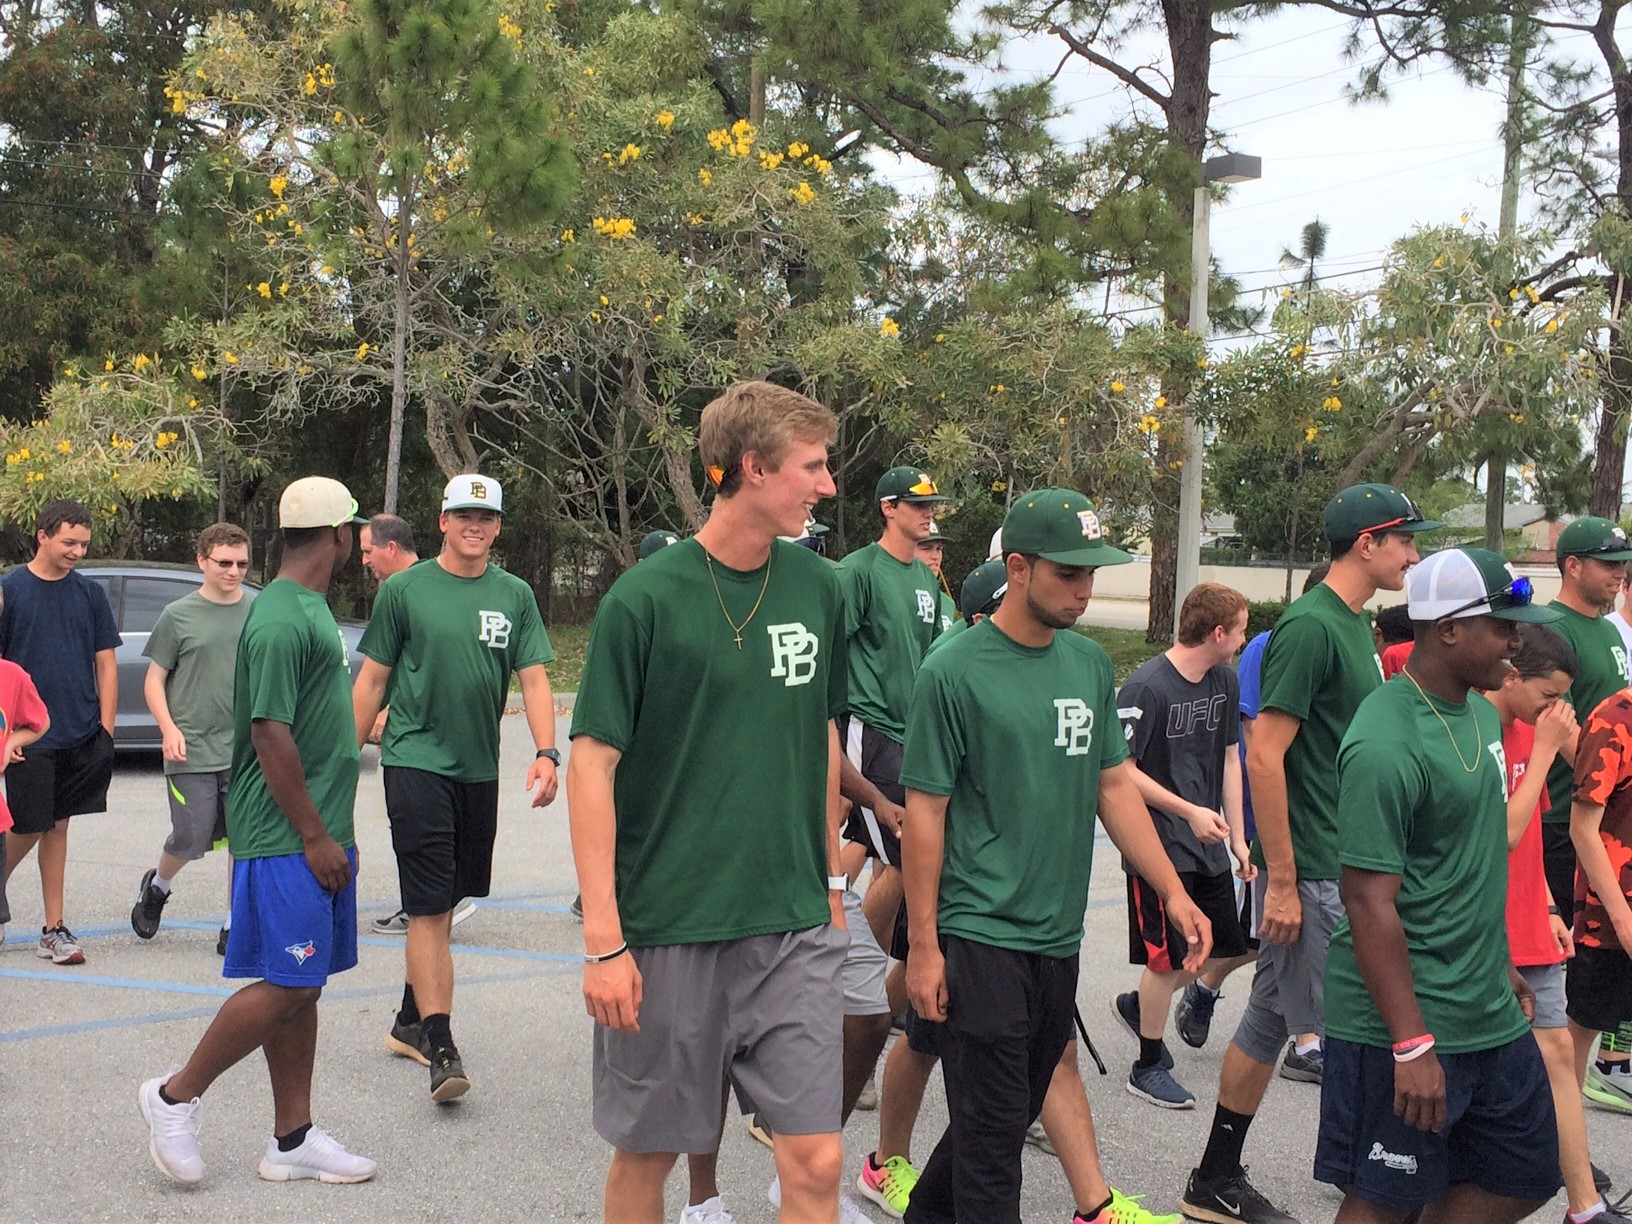 P.B. State Baseball Helps Train For Run